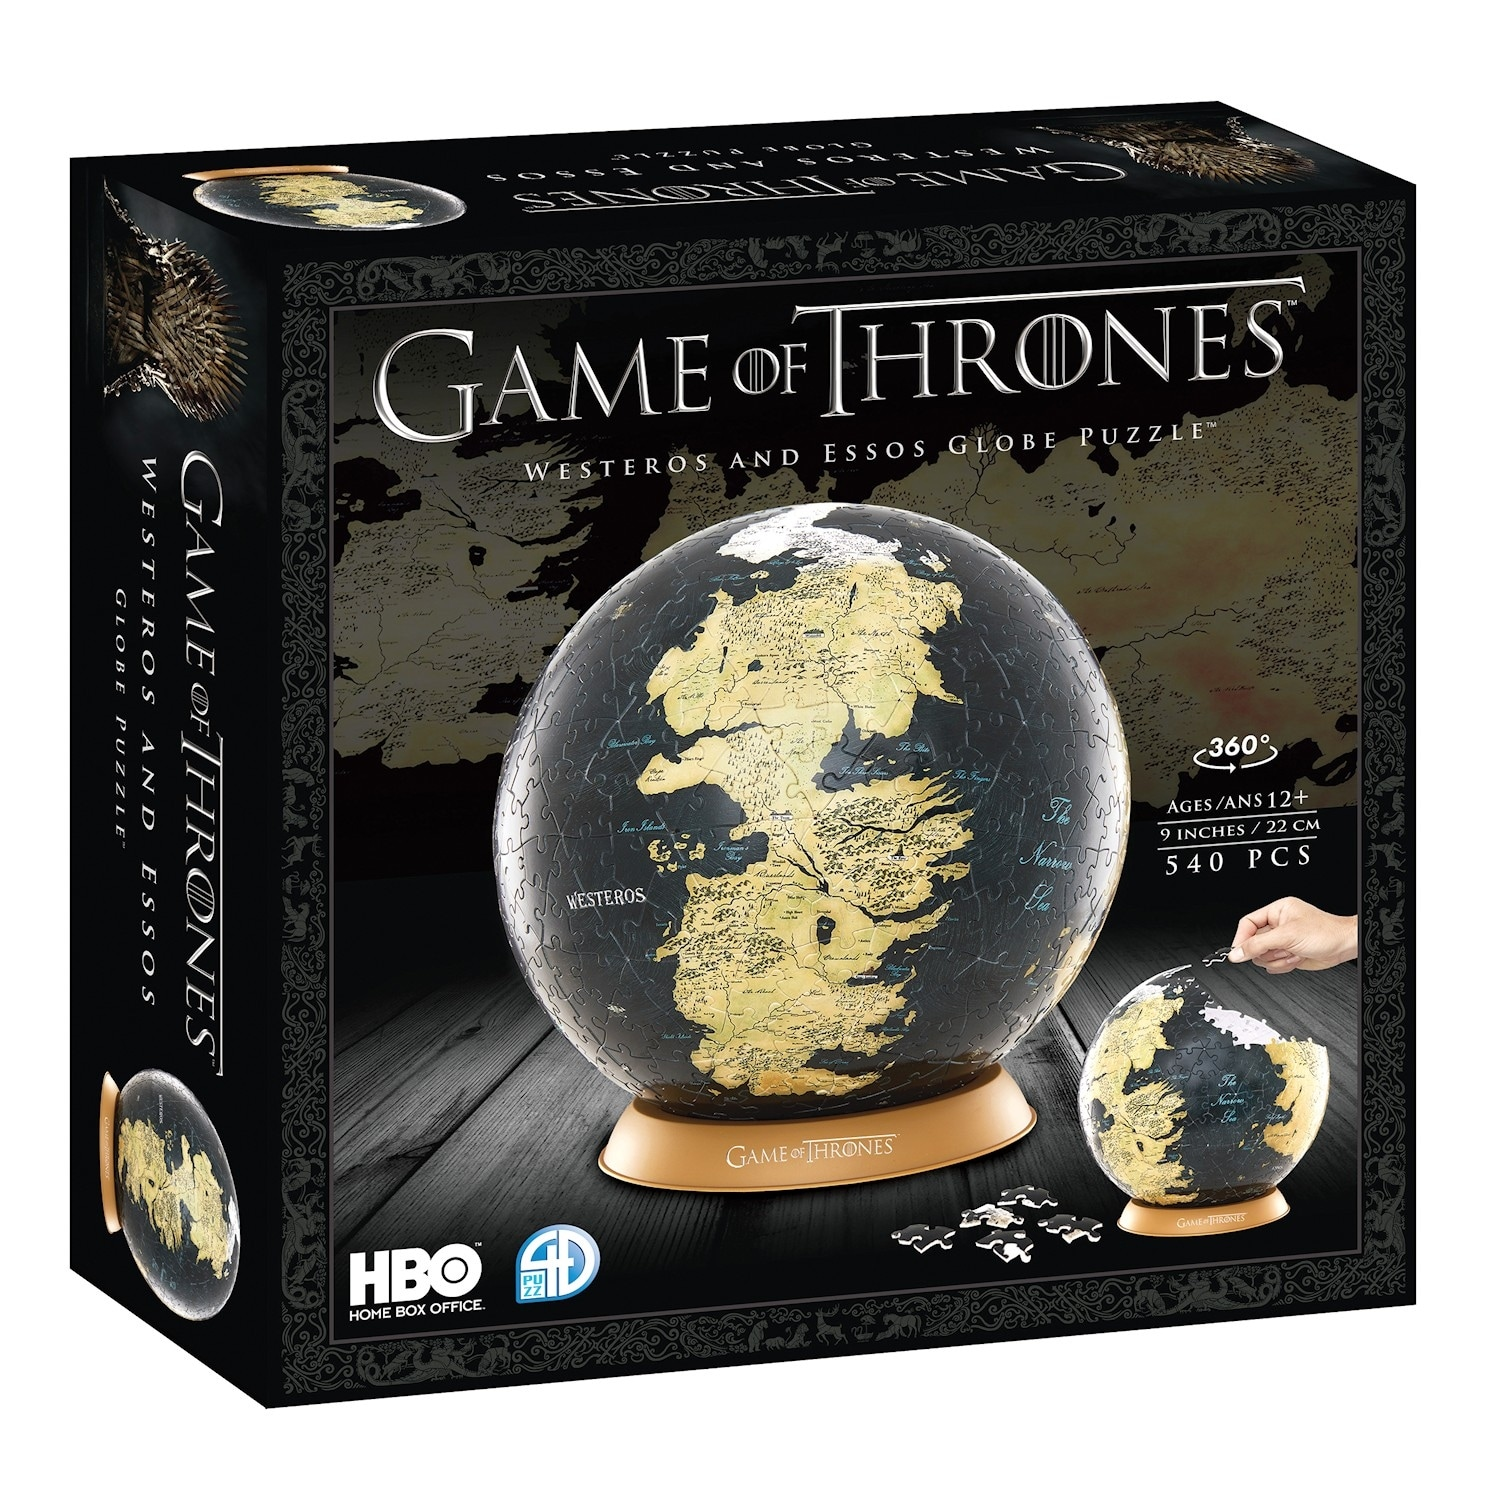 4D Cityscape Game Of Thrones Globe Puzzle - 540 Piece 3D Map of Westeros on action puzzle, world's biggest puzzle, baby name puzzle, teen titans puzzle, happy days puzzle, factoring puzzle, weather puzzle, resident evil 5 puzzle, dracula puzzle, jeremiah puzzle, little house on the prairie puzzle, truzzle puzzle, lord's prayer puzzle, get connected puzzle, fifty shades puzzle, wheel of time puzzle, assassin's creed revelations puzzle, connect puzzle, addicting games puzzle,